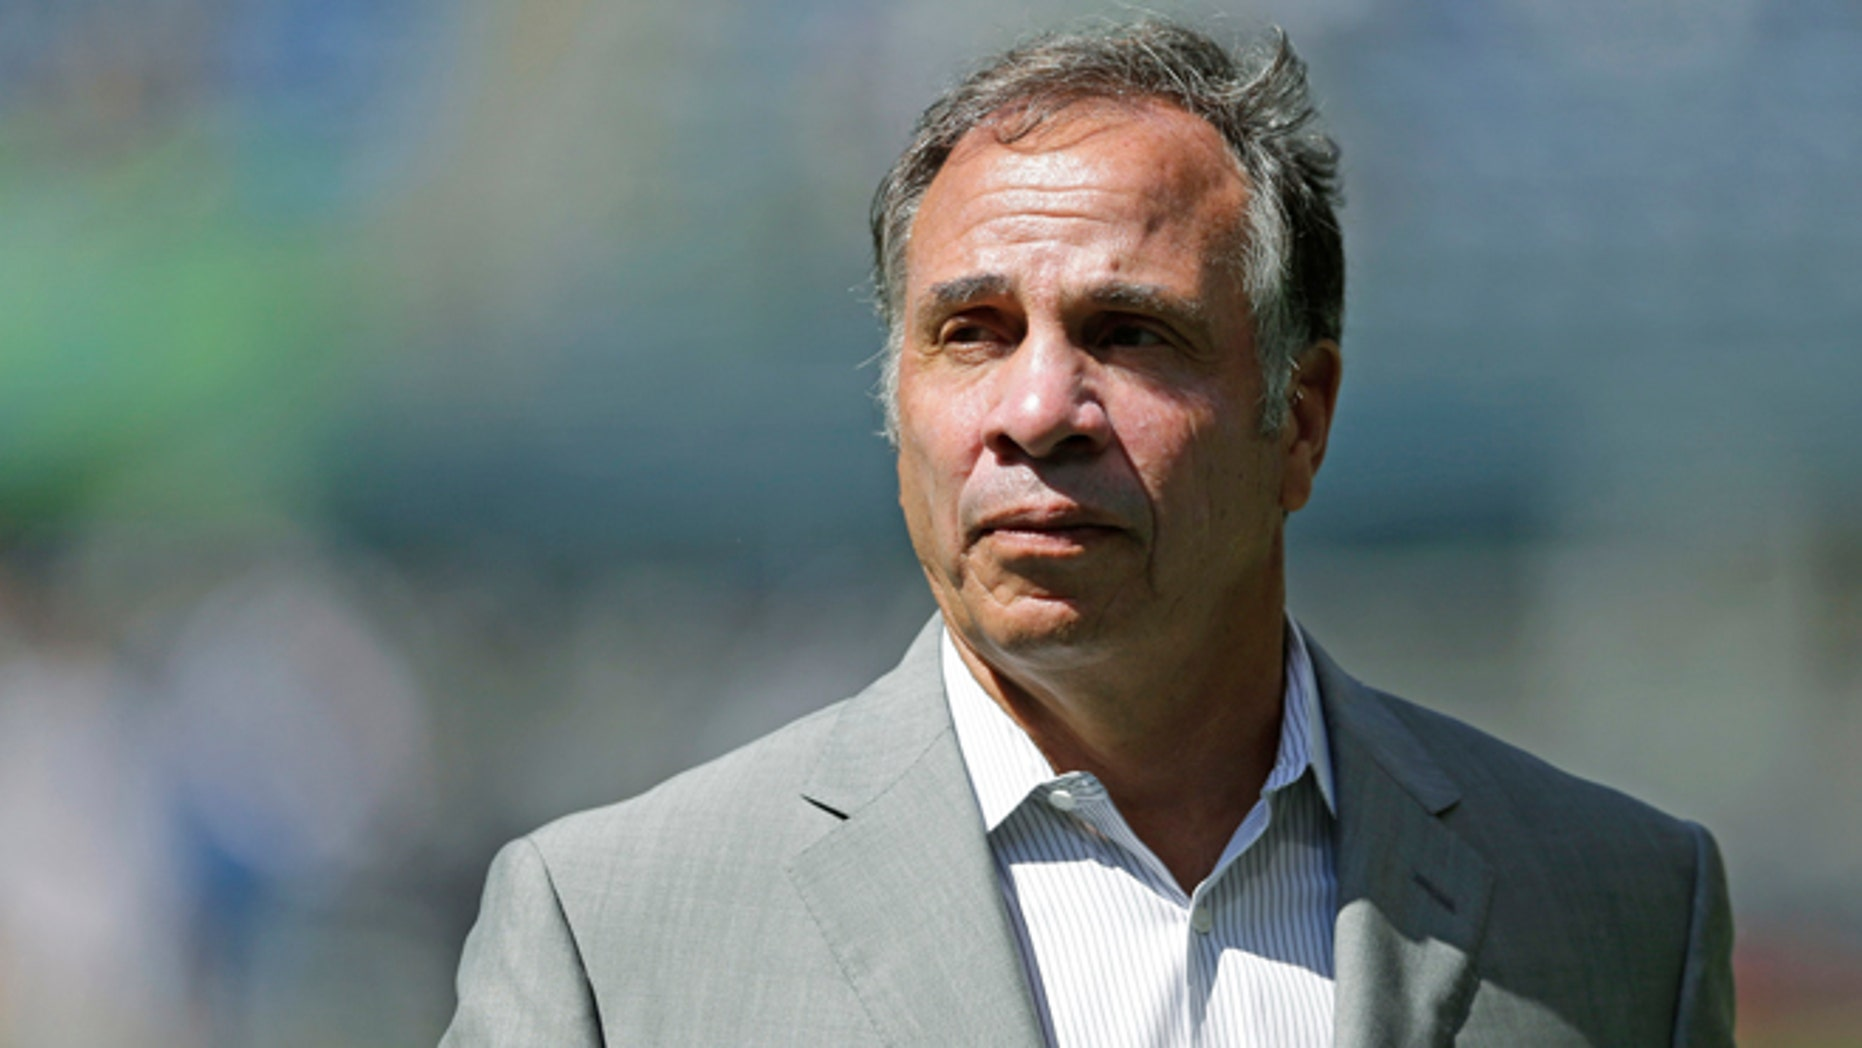 FILE - In this July 31, 2016, file photo, Los Angeles Galaxy Bruce Arena walks on the pitch following an MLS soccer match against the Seattle Sounders, in Seattle. Jurgen Klinsmann was fired as coach of the U.S. soccer team on Monday, Nov. 21, 2016, six days after a 4-0 loss at Costa Rica dropped the Americans to 0-2 in the final round of World Cup qualifying. LA Galaxy coach Bruce Arena is the favorite to succeed Klinsmann. (AP Photo/Ted S. Warren, File)